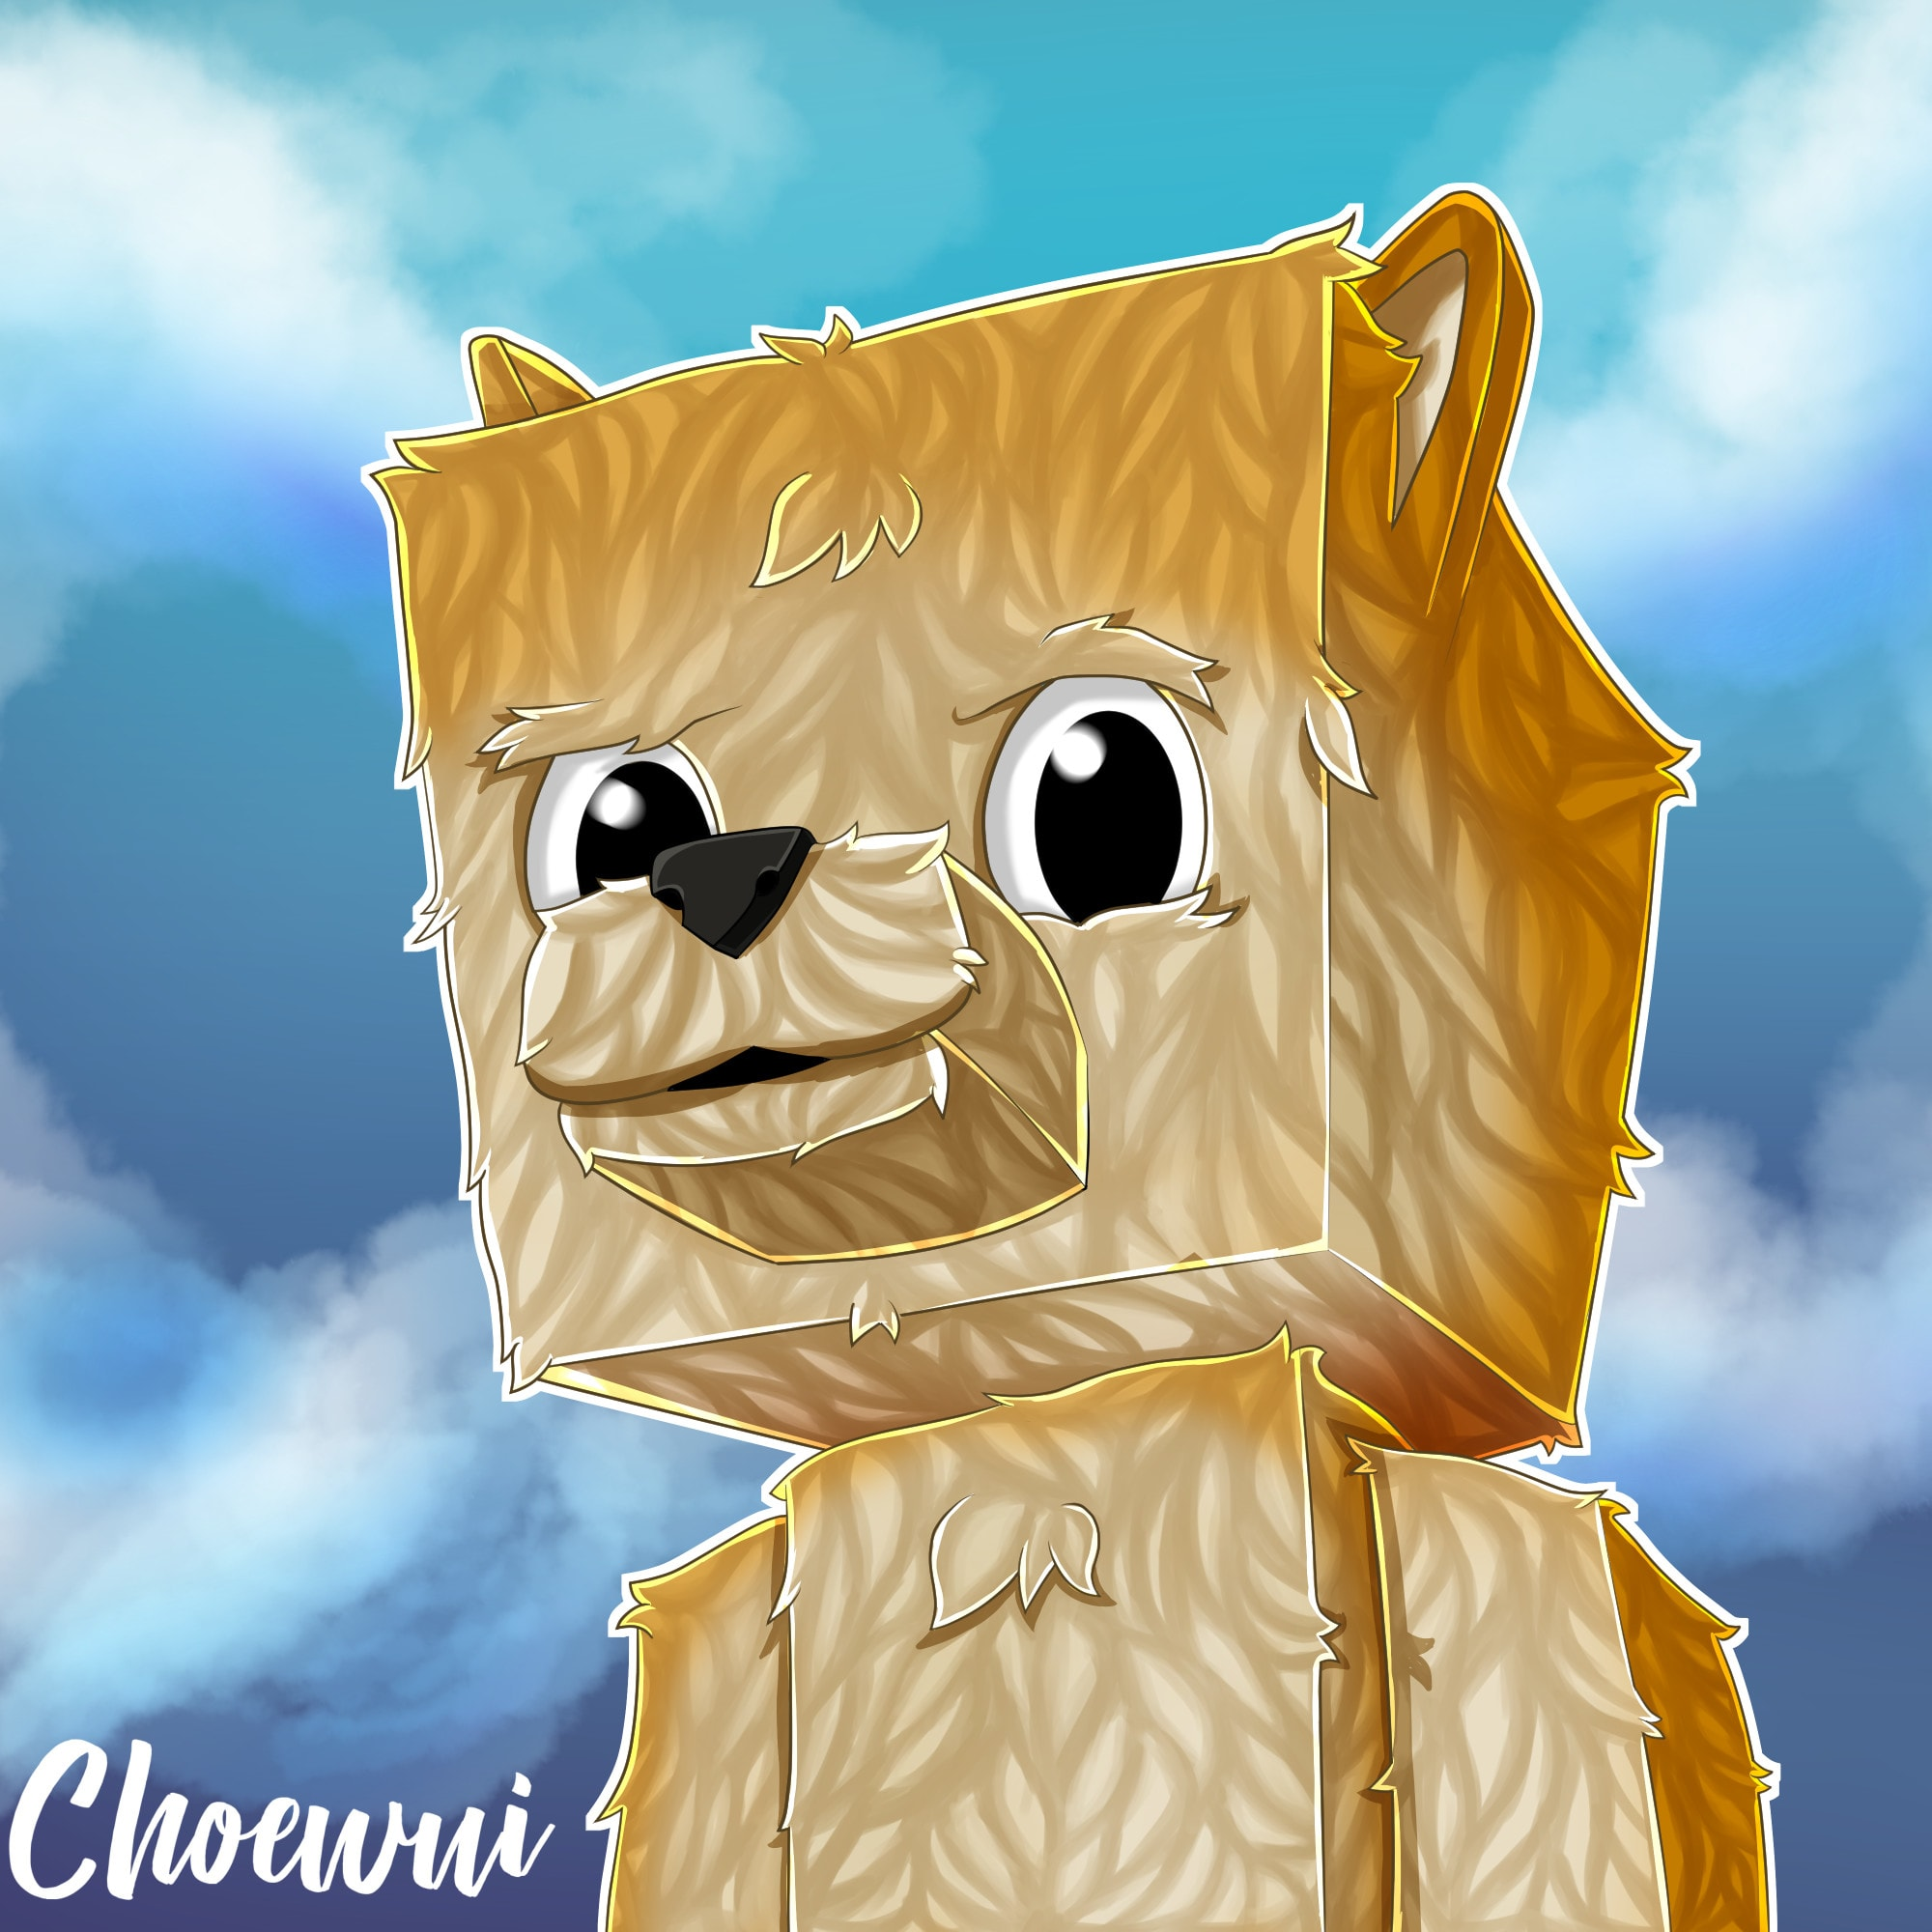 Draw Your Minecraft Roblox Avatar By Choewui